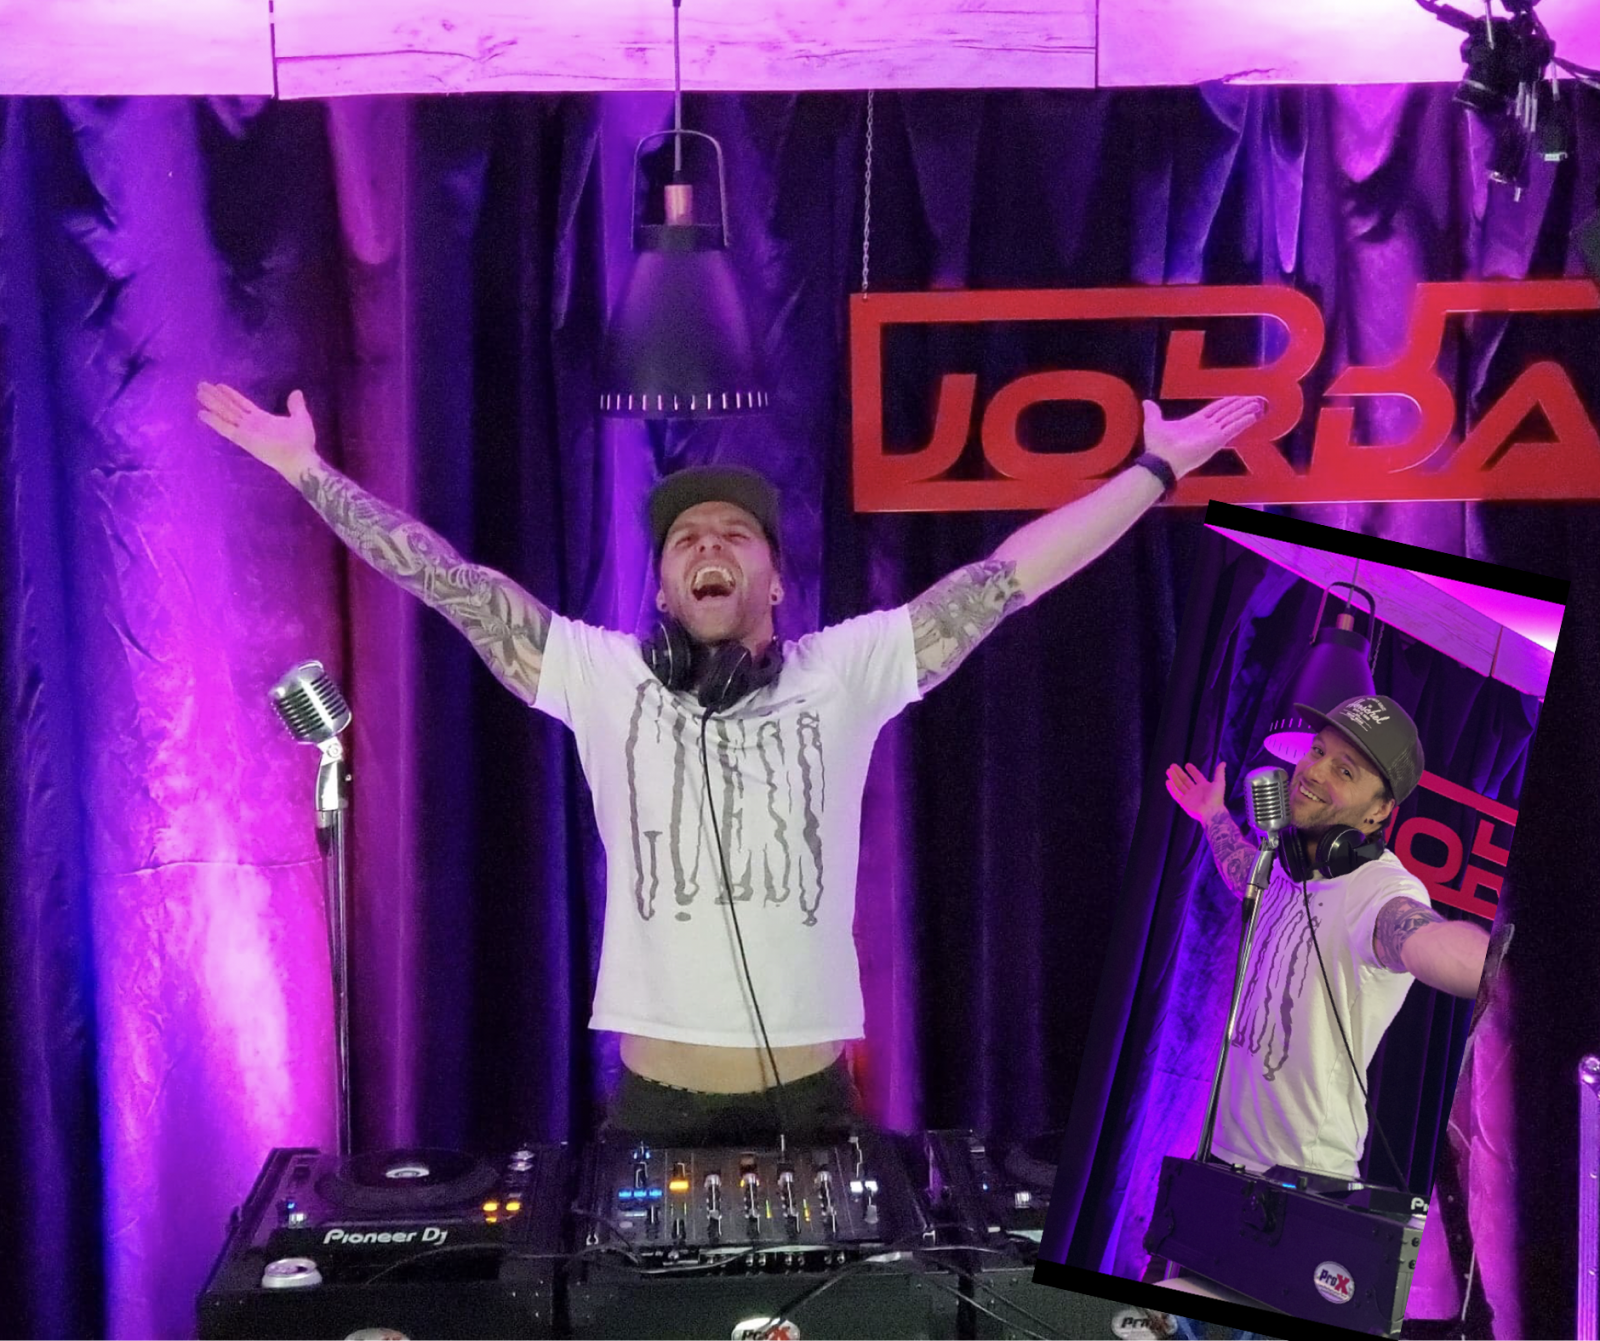 Un party virtuel dans le salon avec DJ Jordan